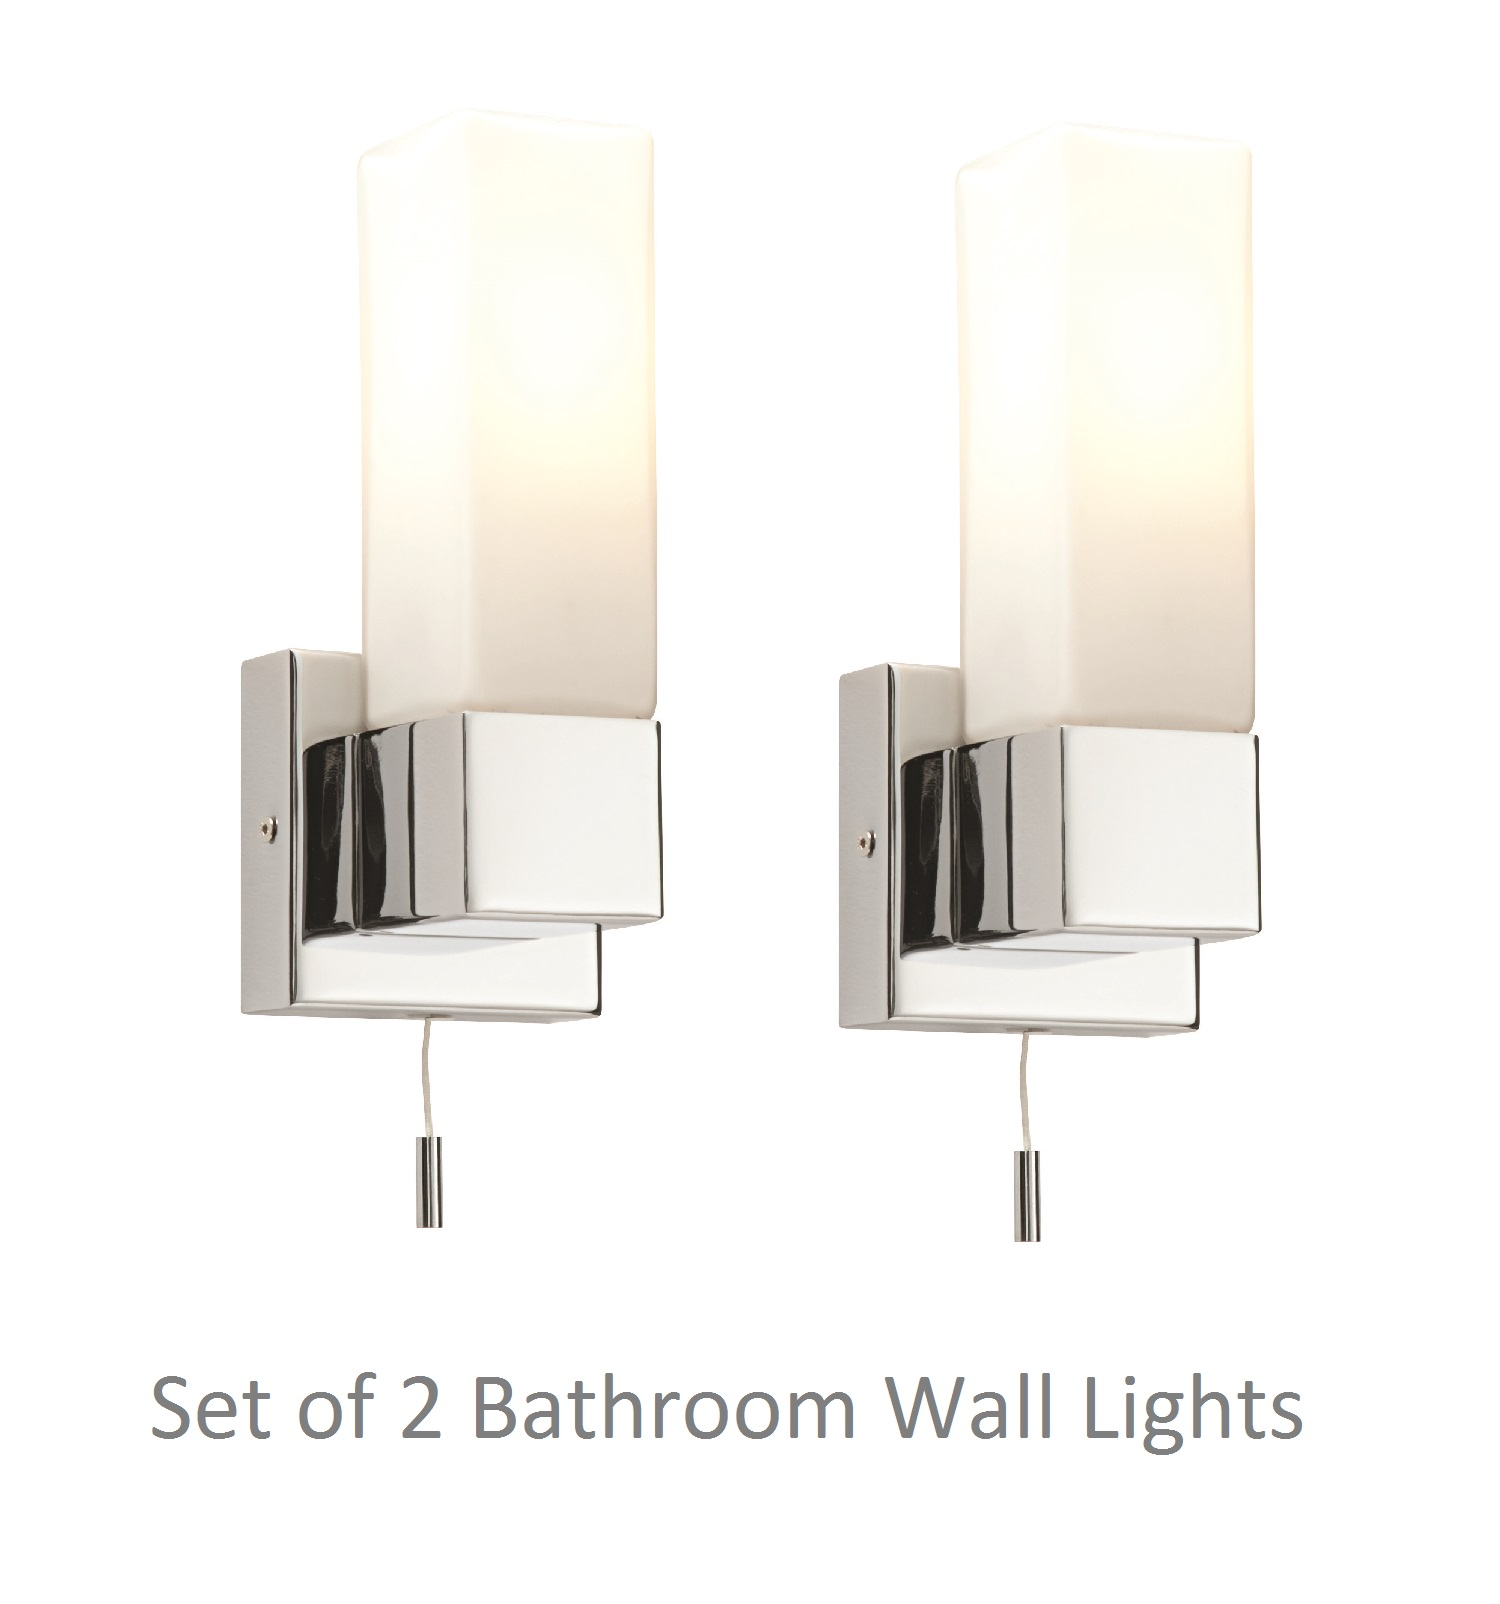 pair of modern chrome switched ip44 bathroom wall light w. Black Bedroom Furniture Sets. Home Design Ideas